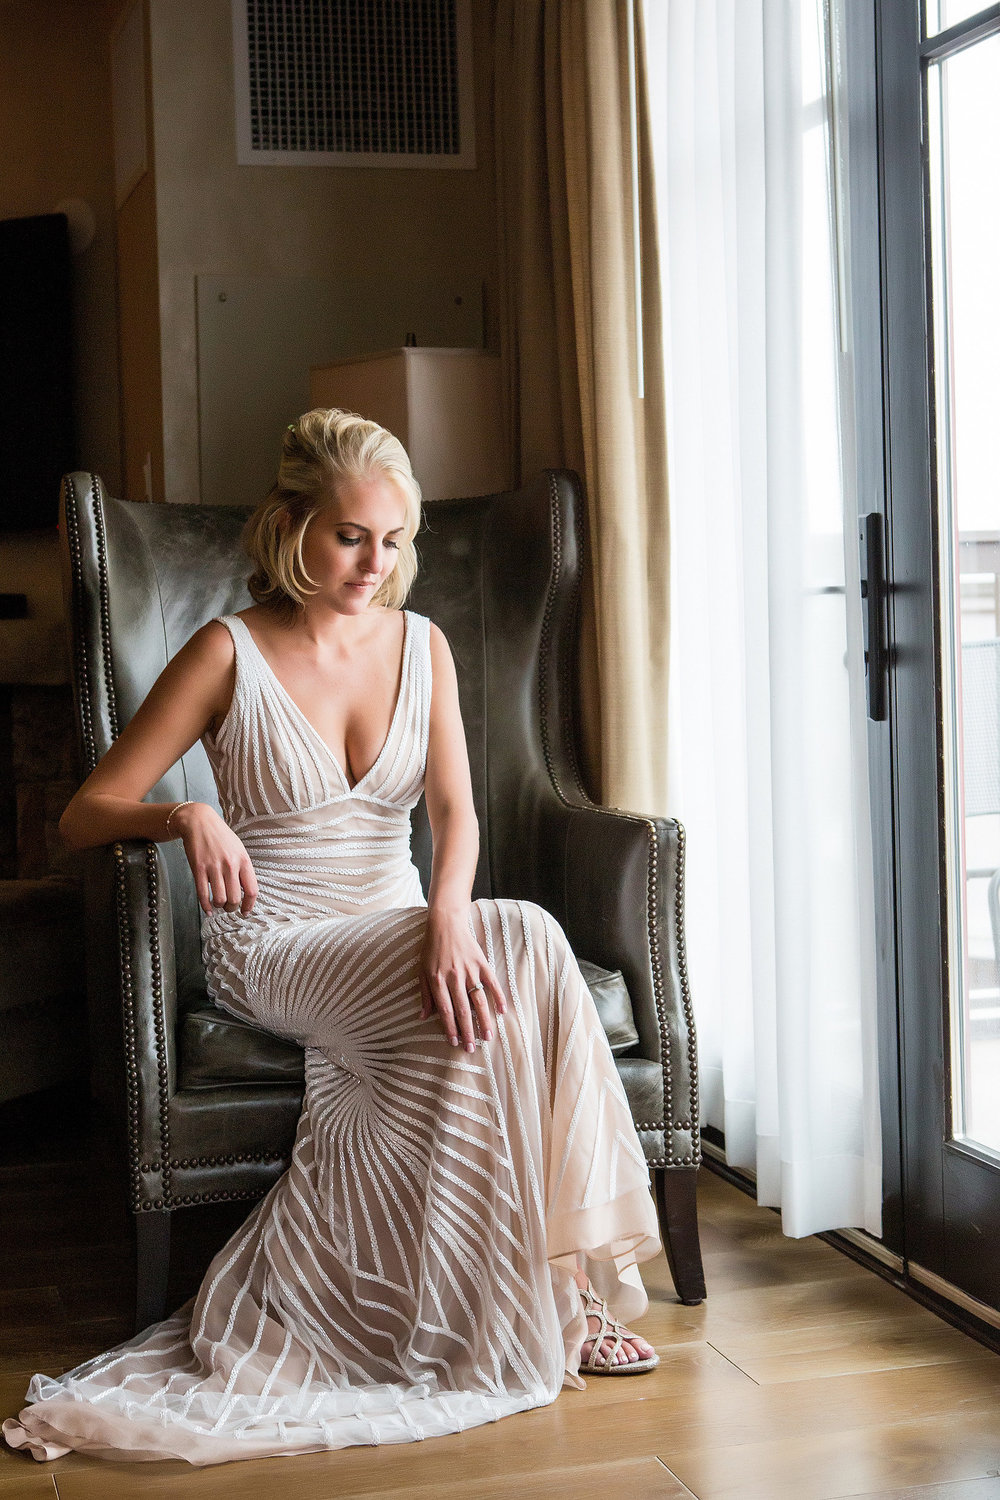 Whitney | Naeem Khan Hollywood gown |  Real Life Photographs